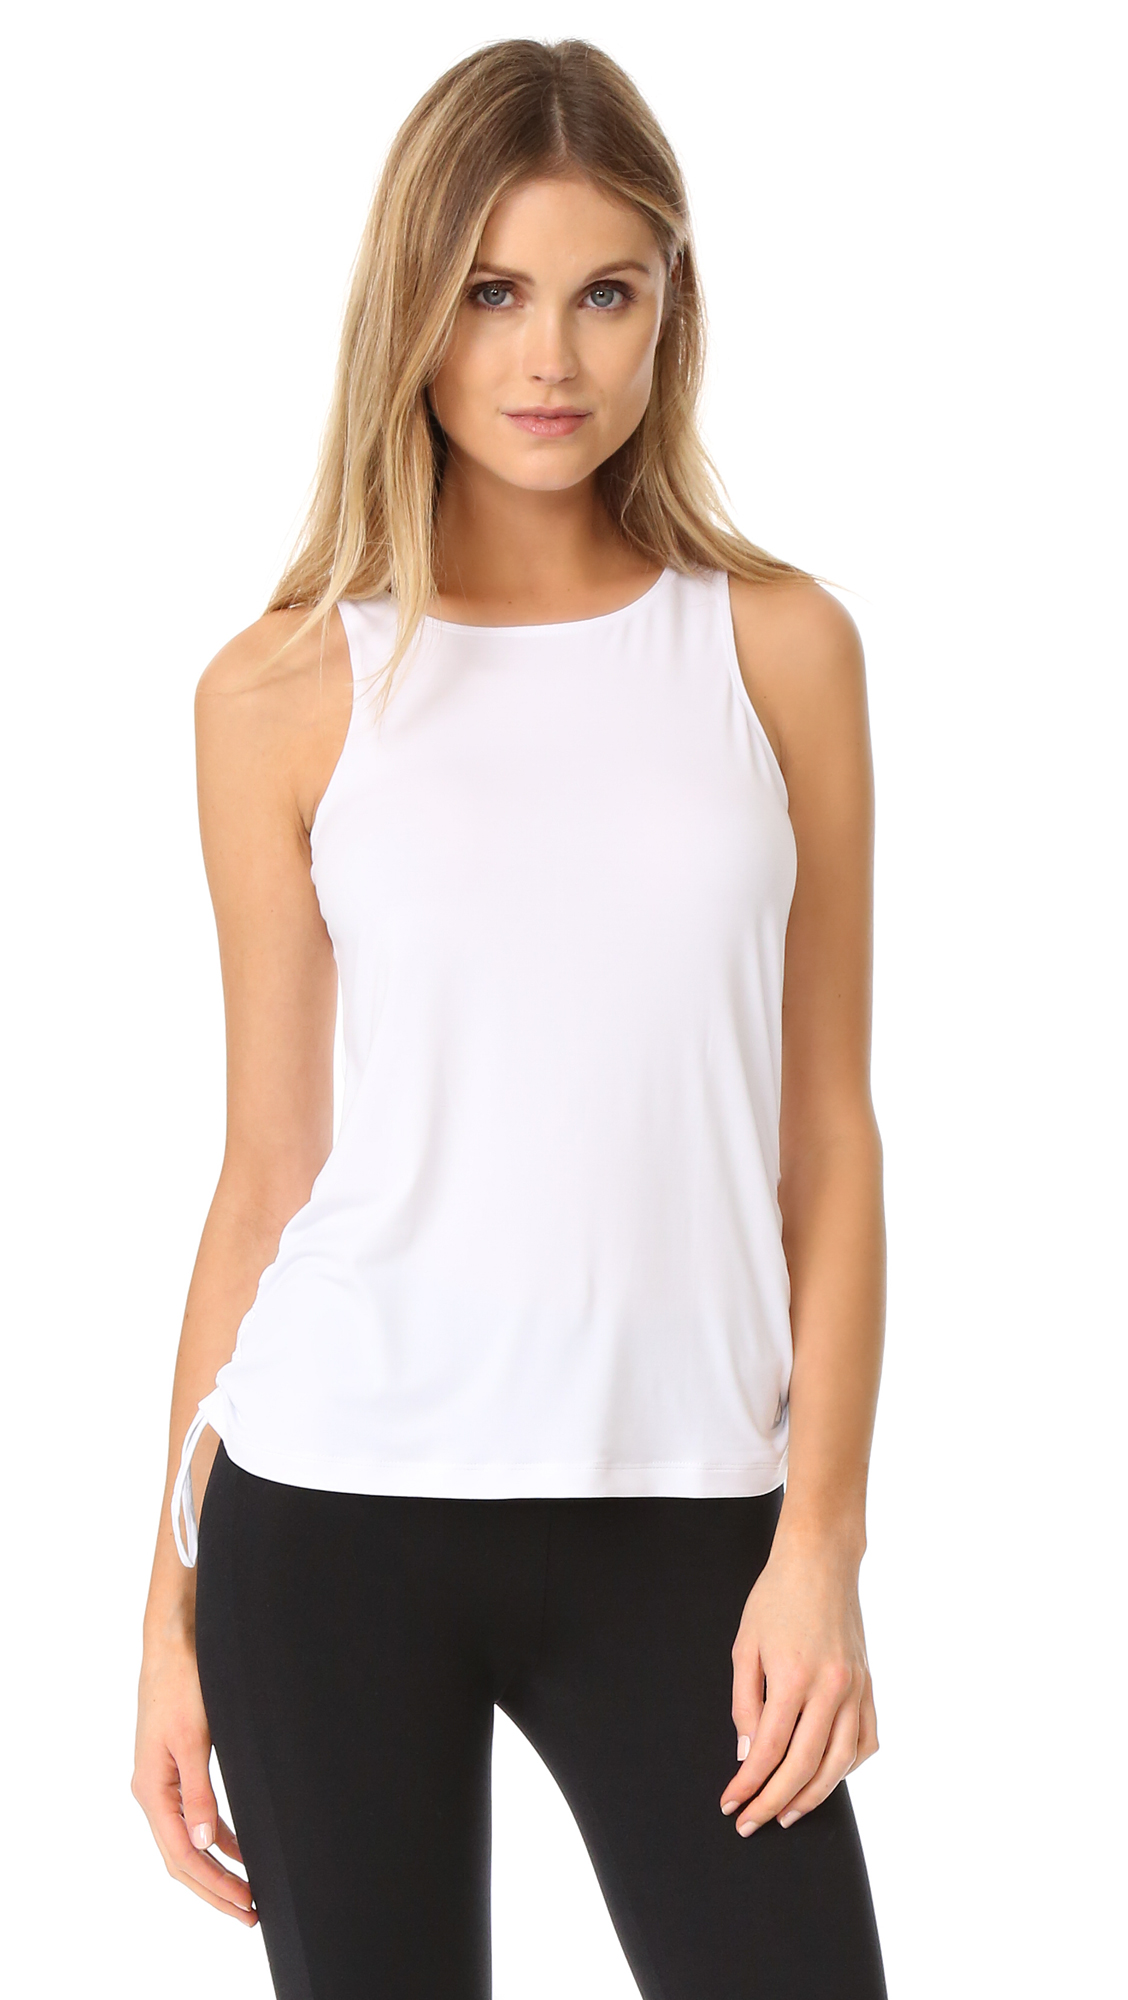 PRISMSPORT Grace Top